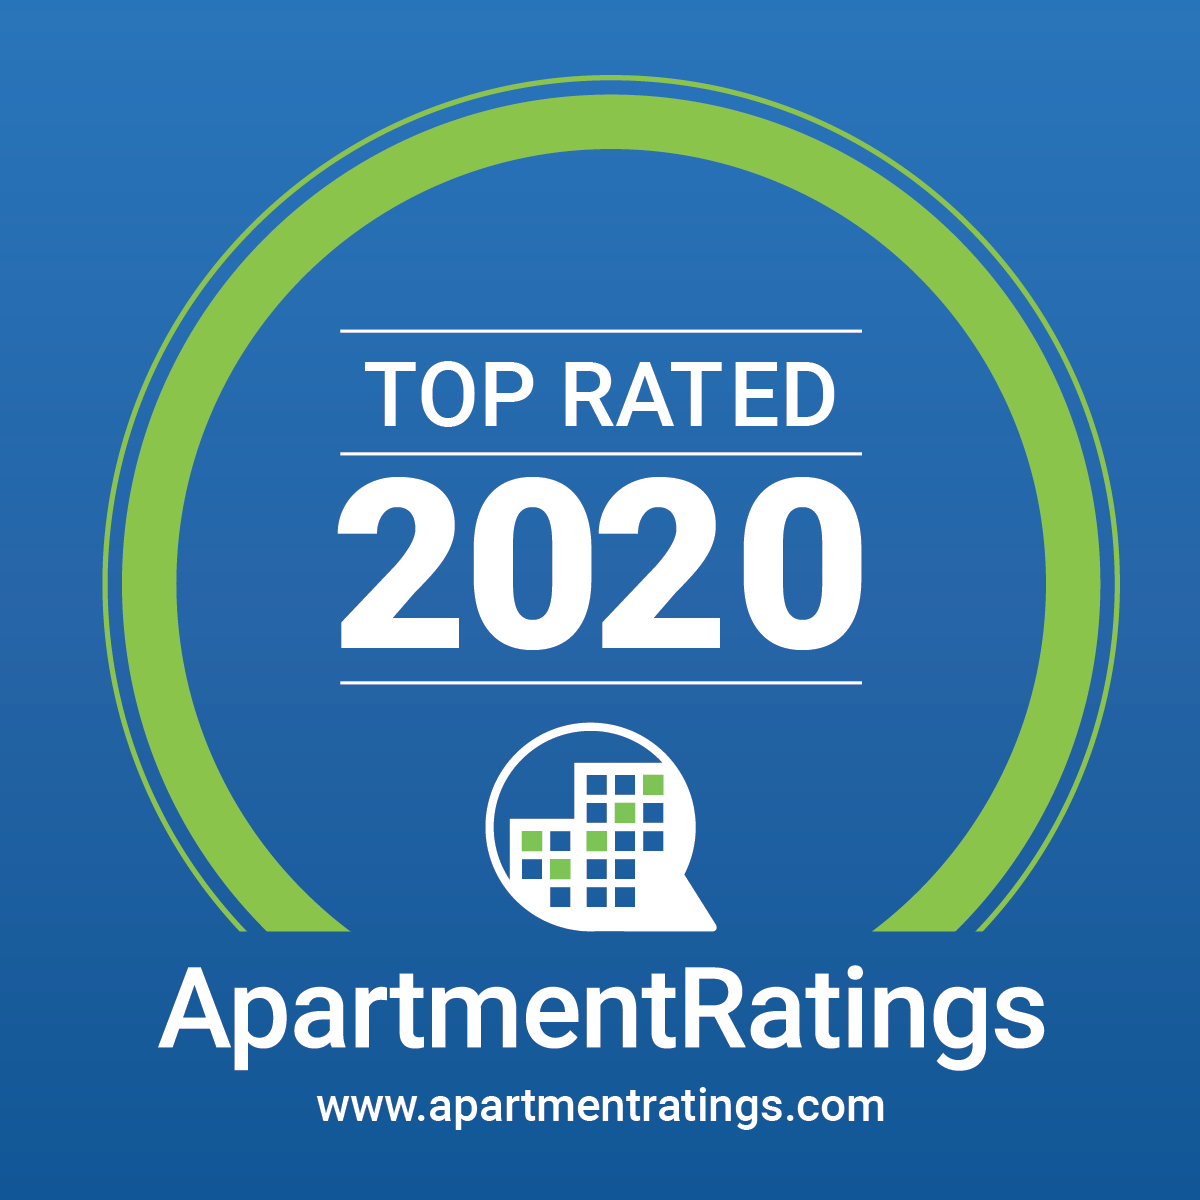 2020 Top Rated badge from Apartment Ratings